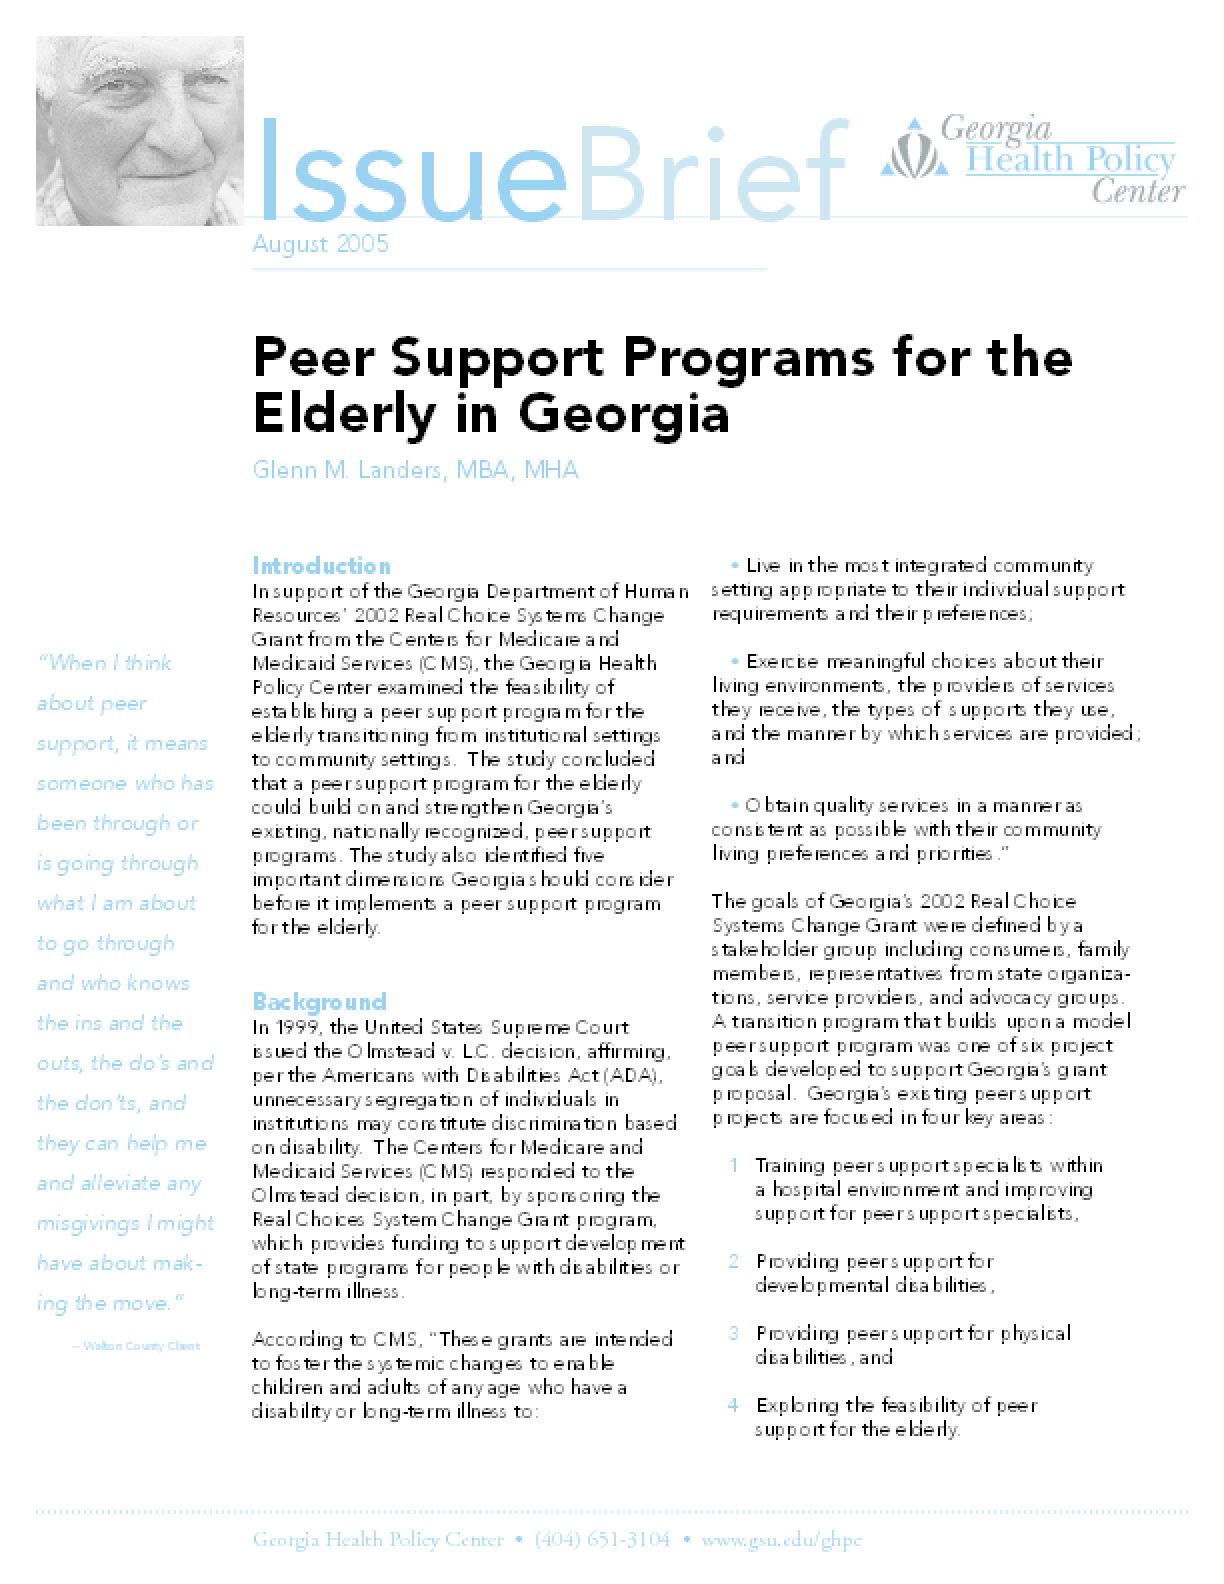 Peer Support Programs for the Elderly in Georgia